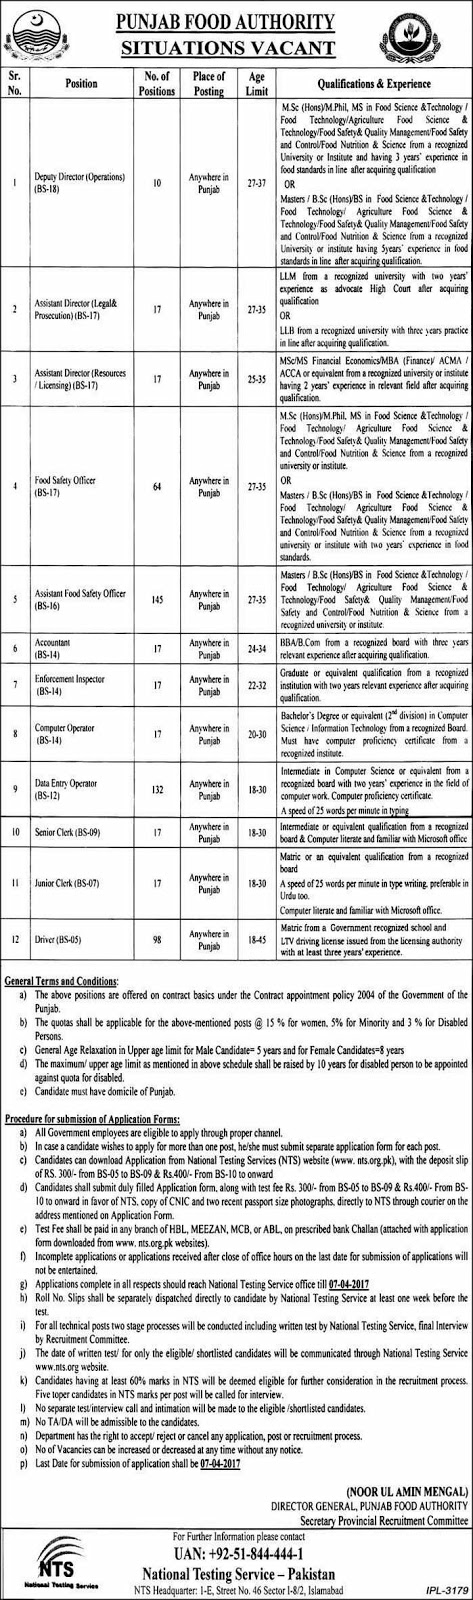 600 Government Jobs in Punjab Food Authority Lahore Jobs for